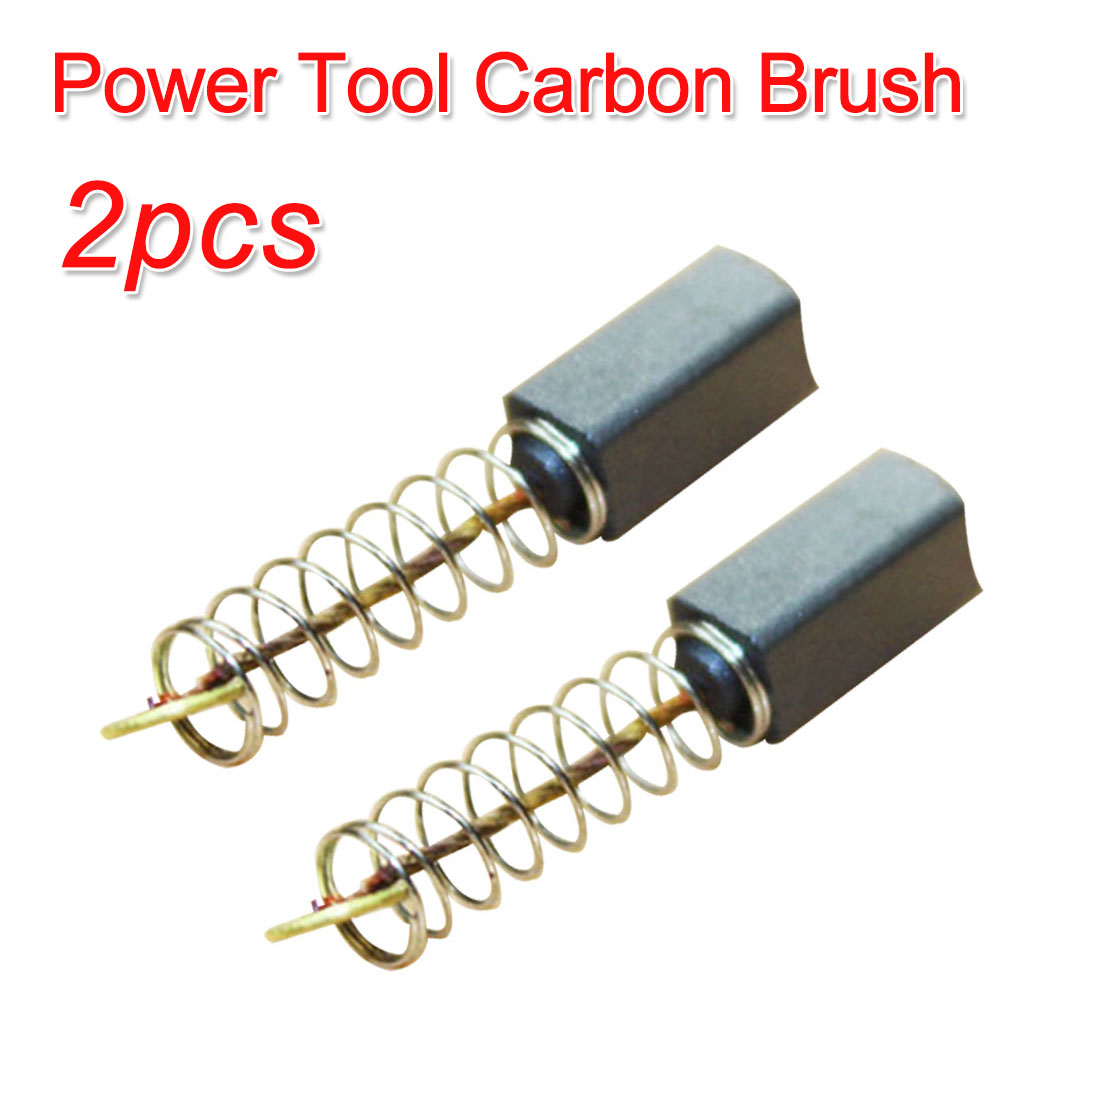 2pcs Replacement Electric Dril Motor Carbon Brushes For Power Tool Grind Accessories Repairing Spare Park For Dremel 3000/200